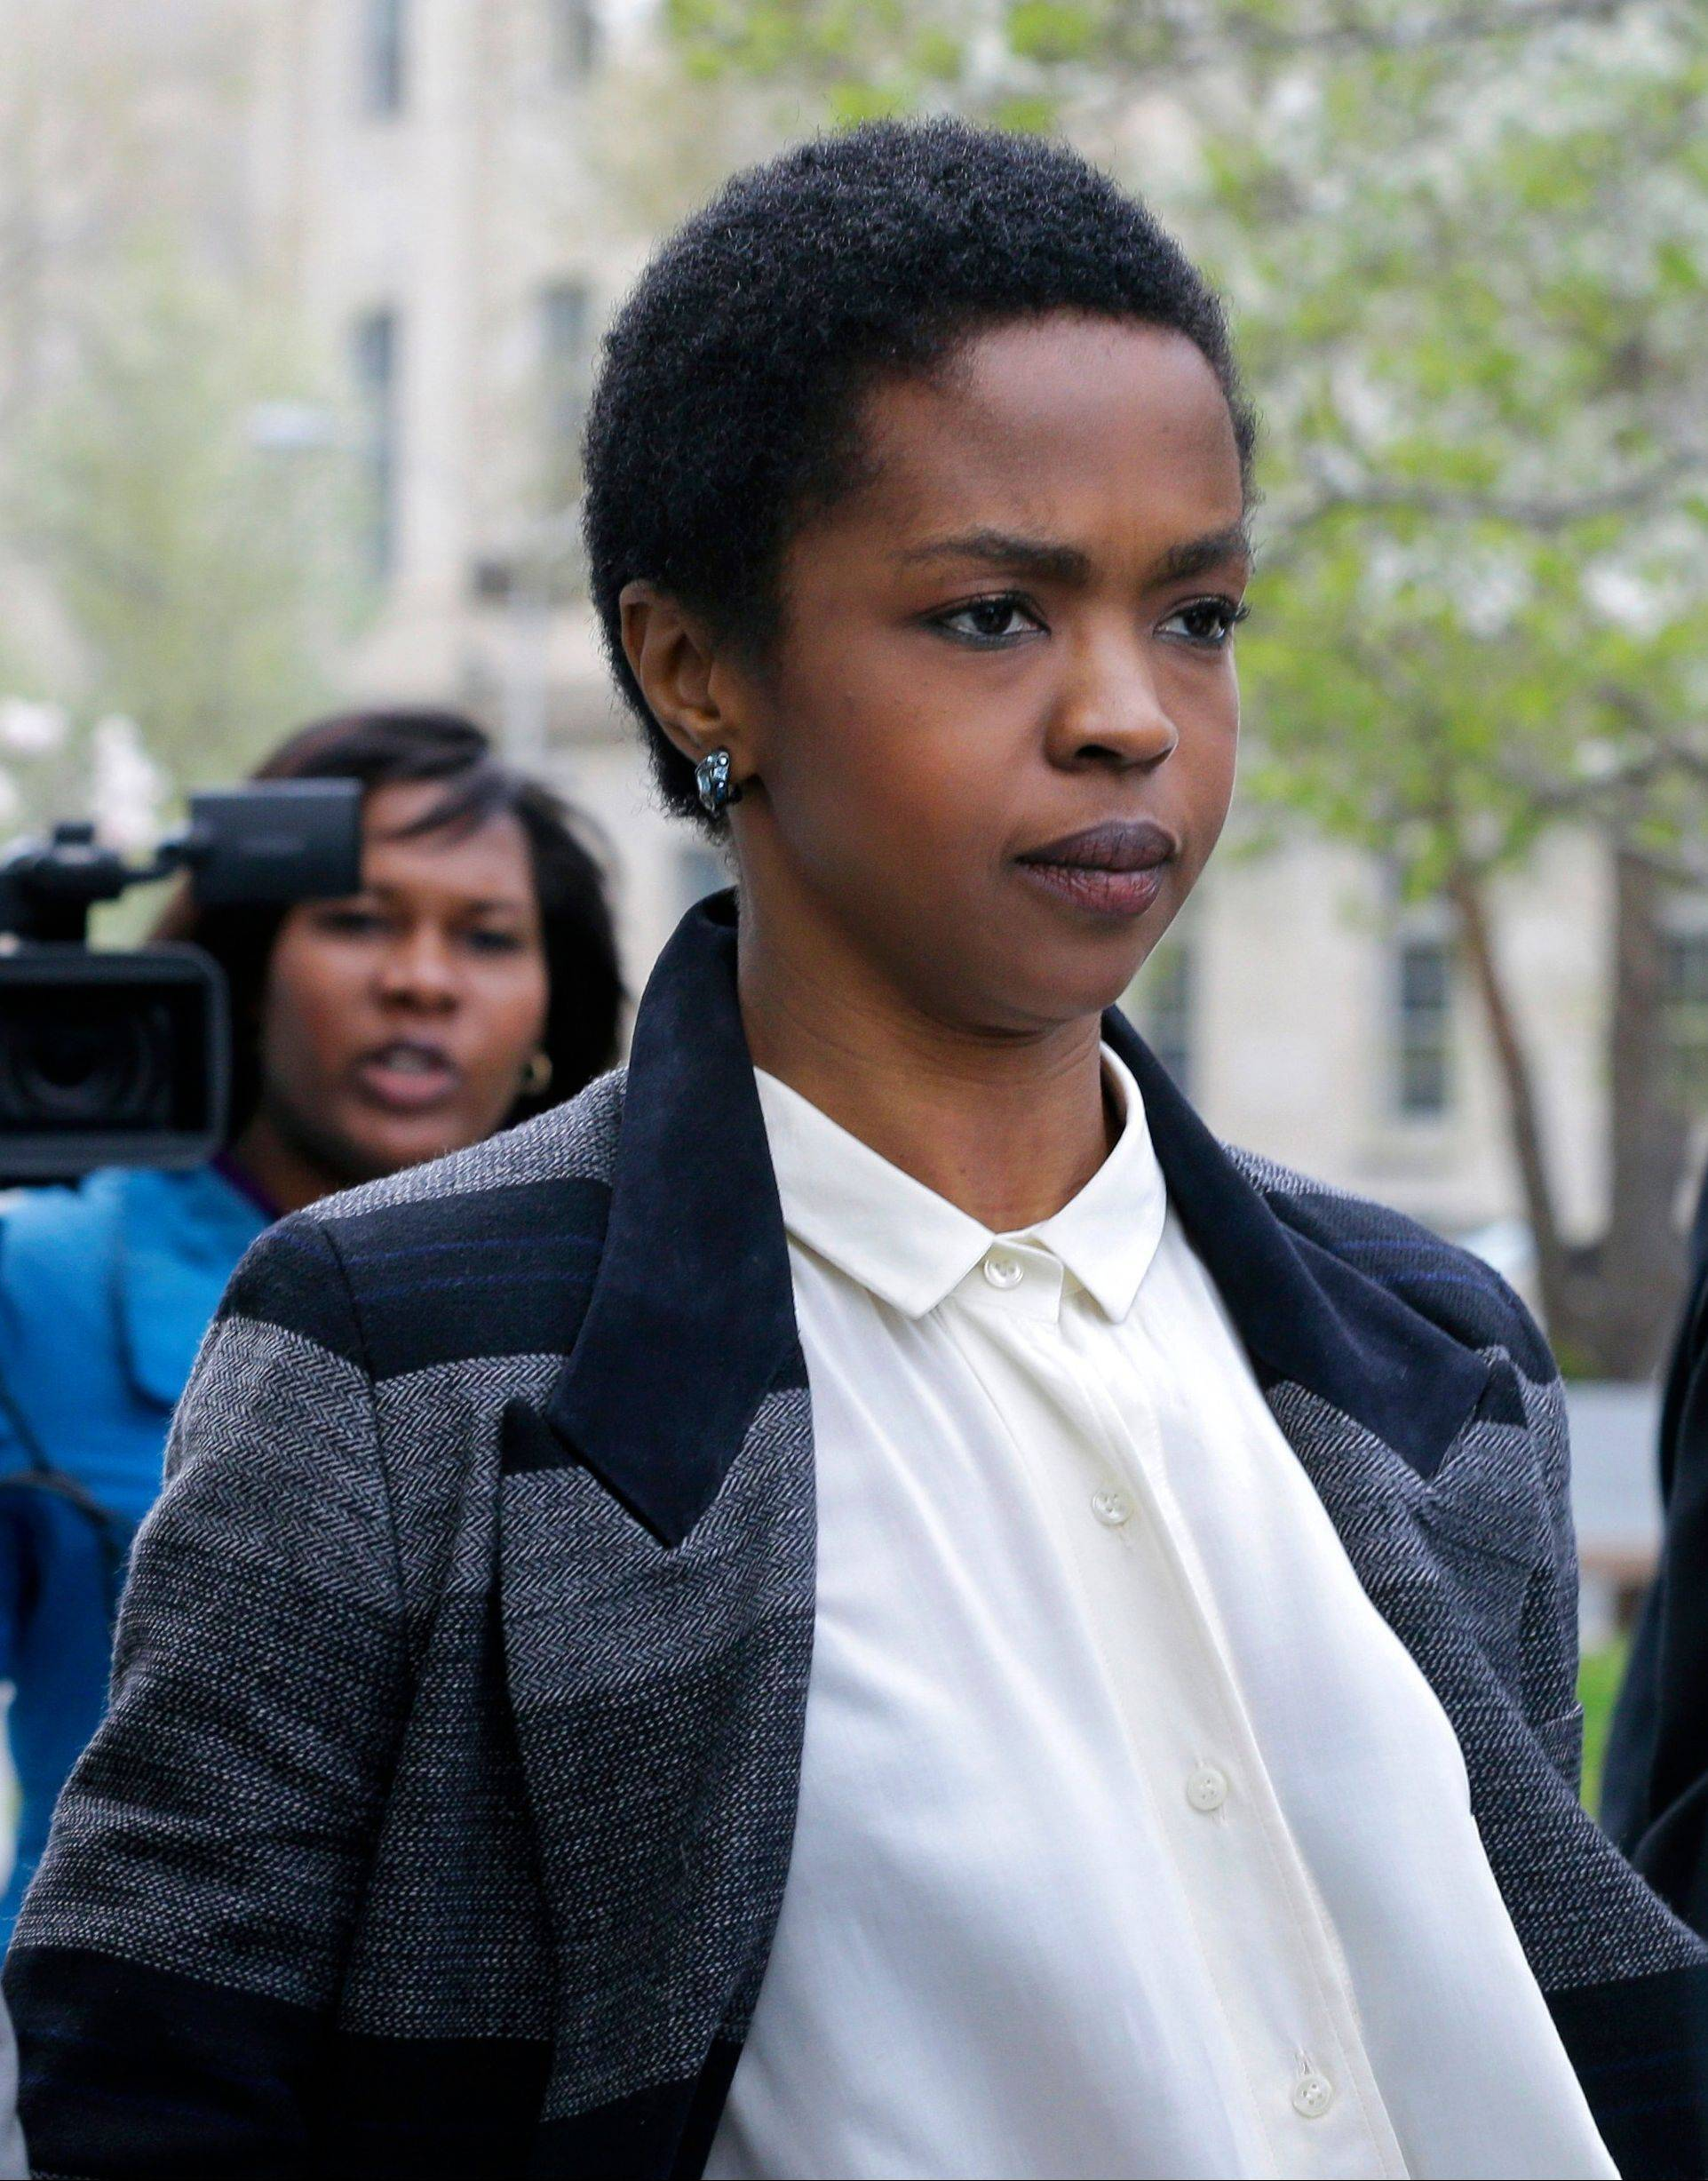 Singer Lauryn Hill has started serving a three-month prison sentence in Connecticut for failing to pay about $1 million in taxes over the past decade. The Grammy-winning singer reported Monday to the federal prison in Danbury.